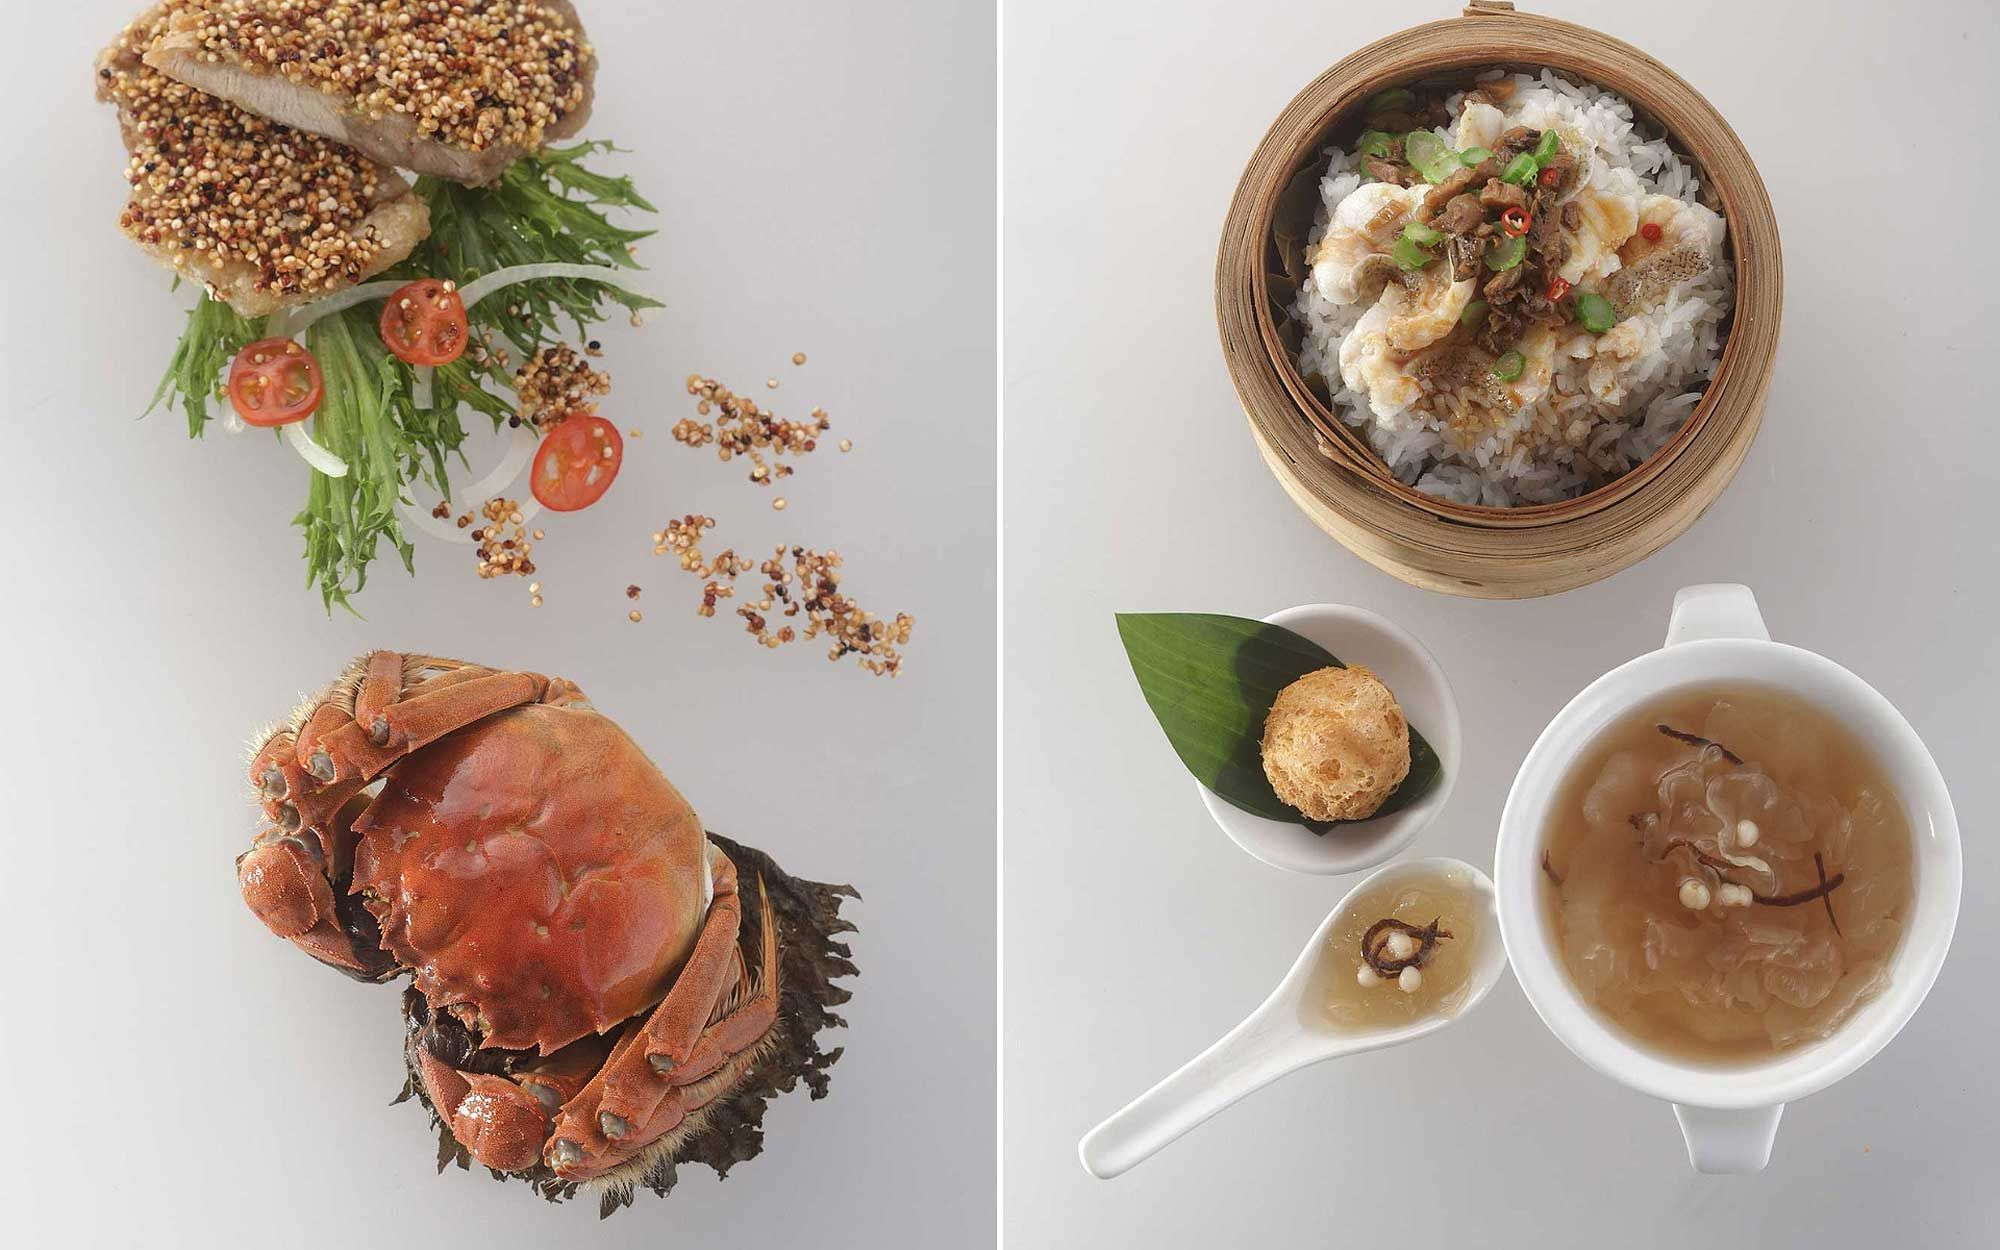 Enjoy The Start Of Hairy Crab Season With This 6-Course Set Menu